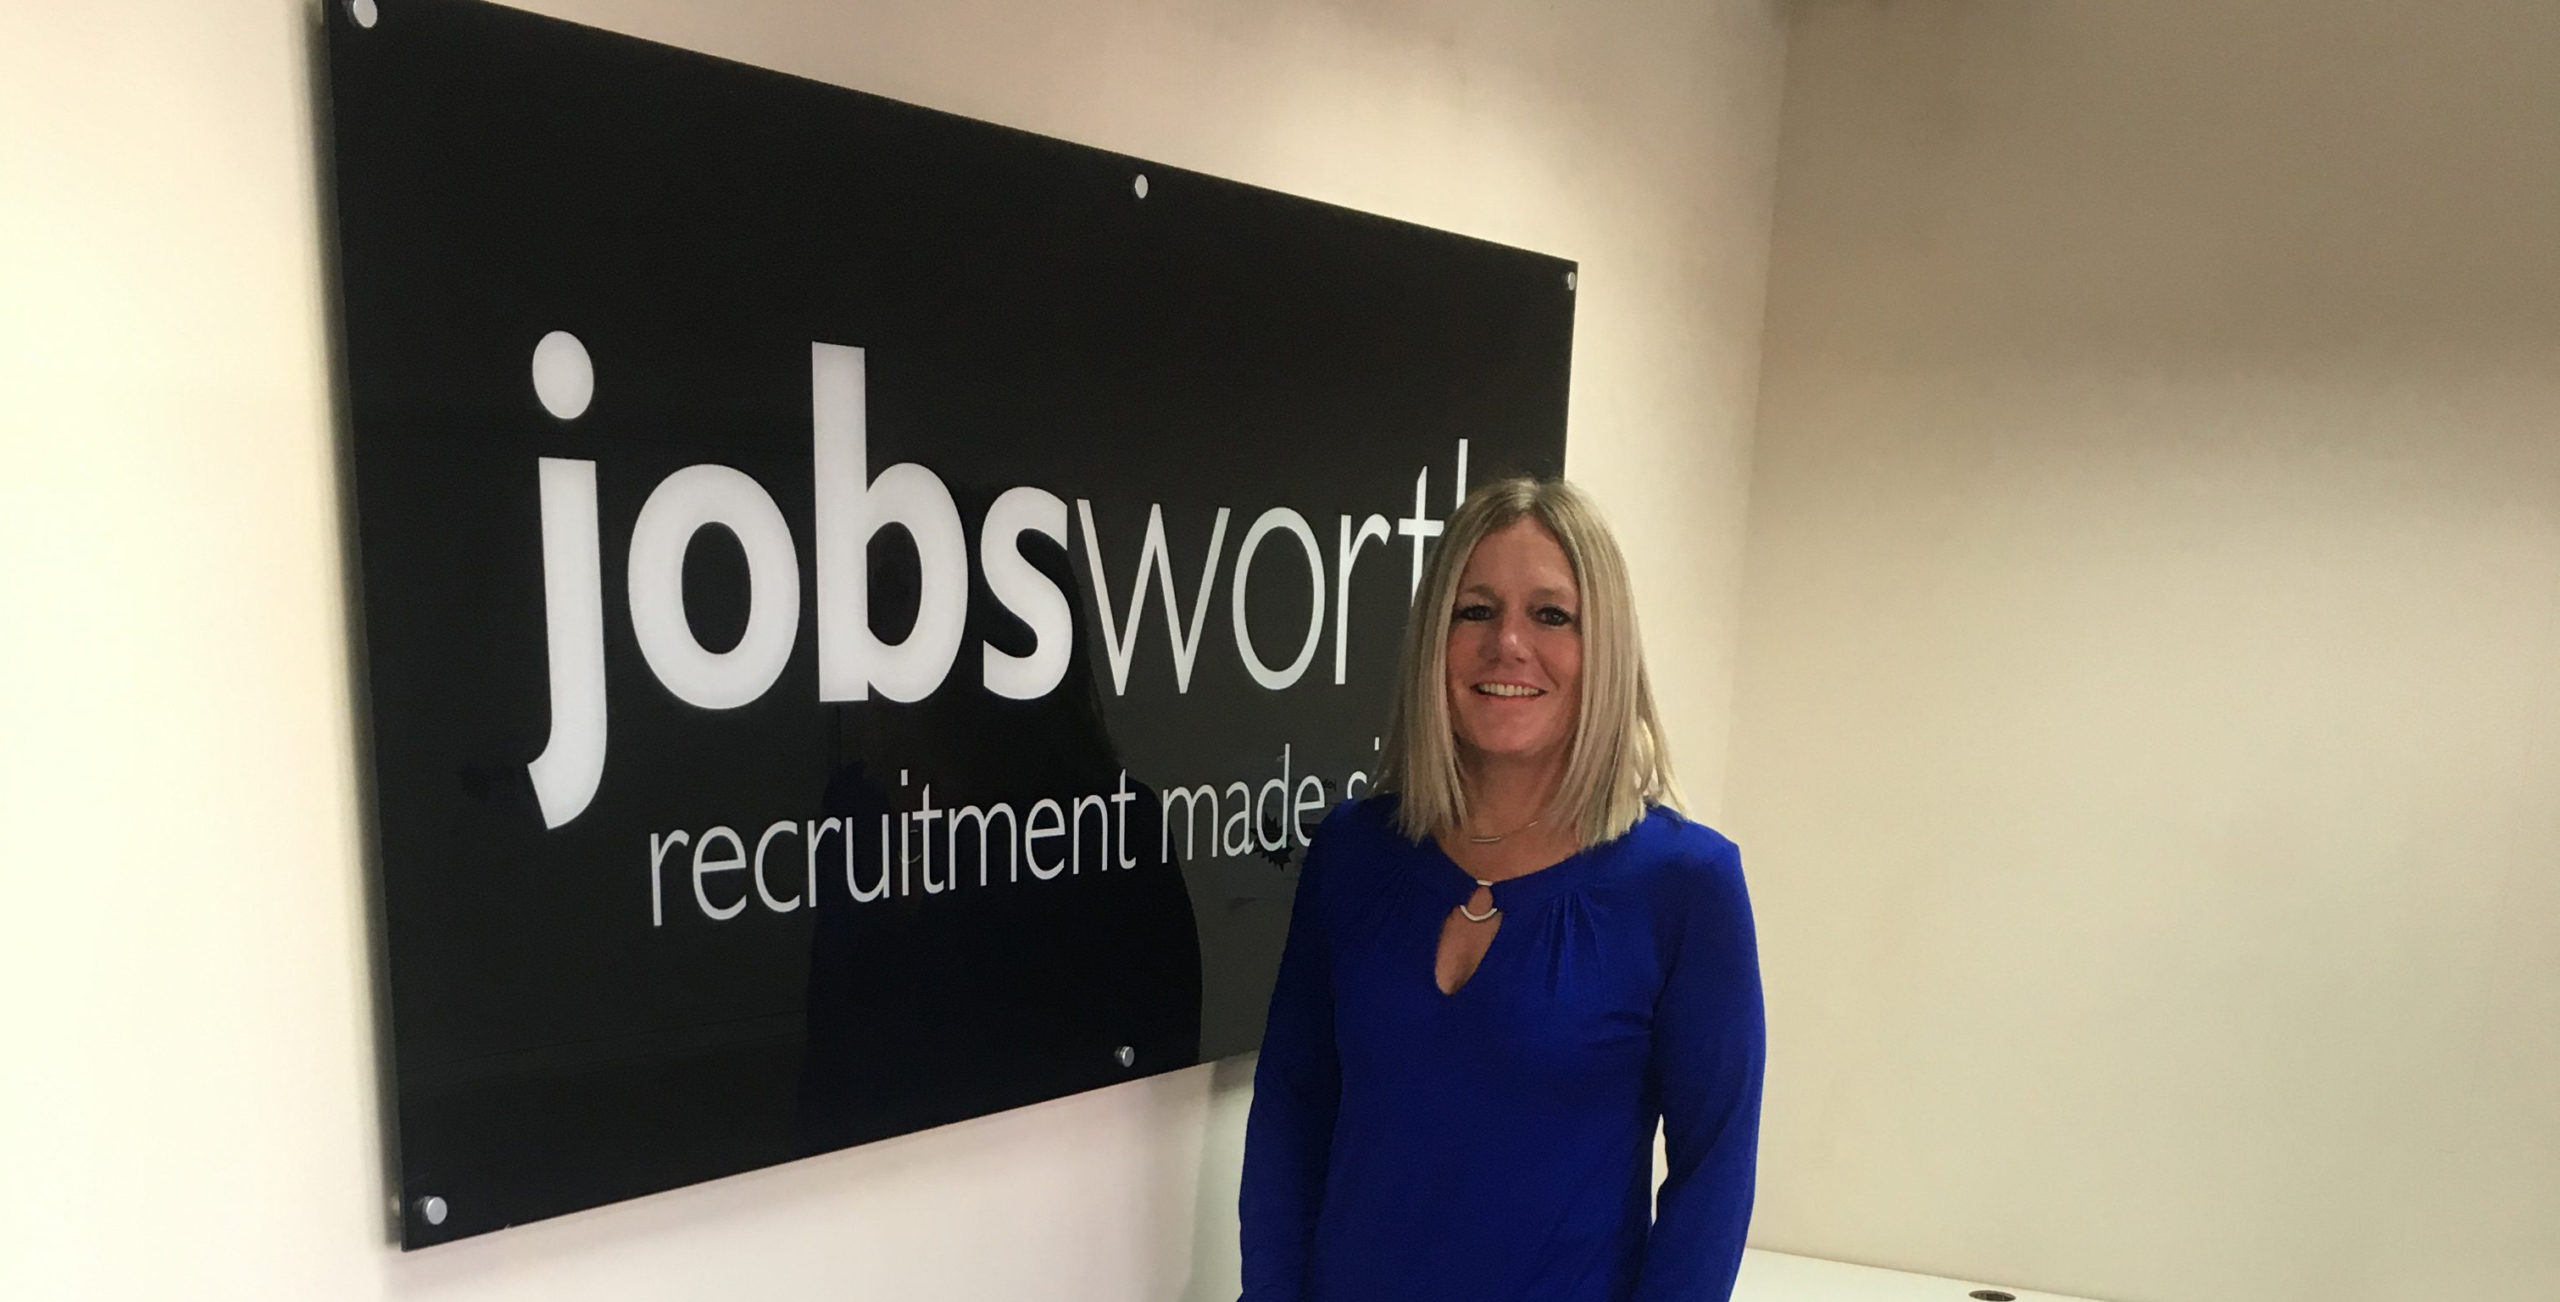 Employee Sarah stood infront of Jobsworth sign